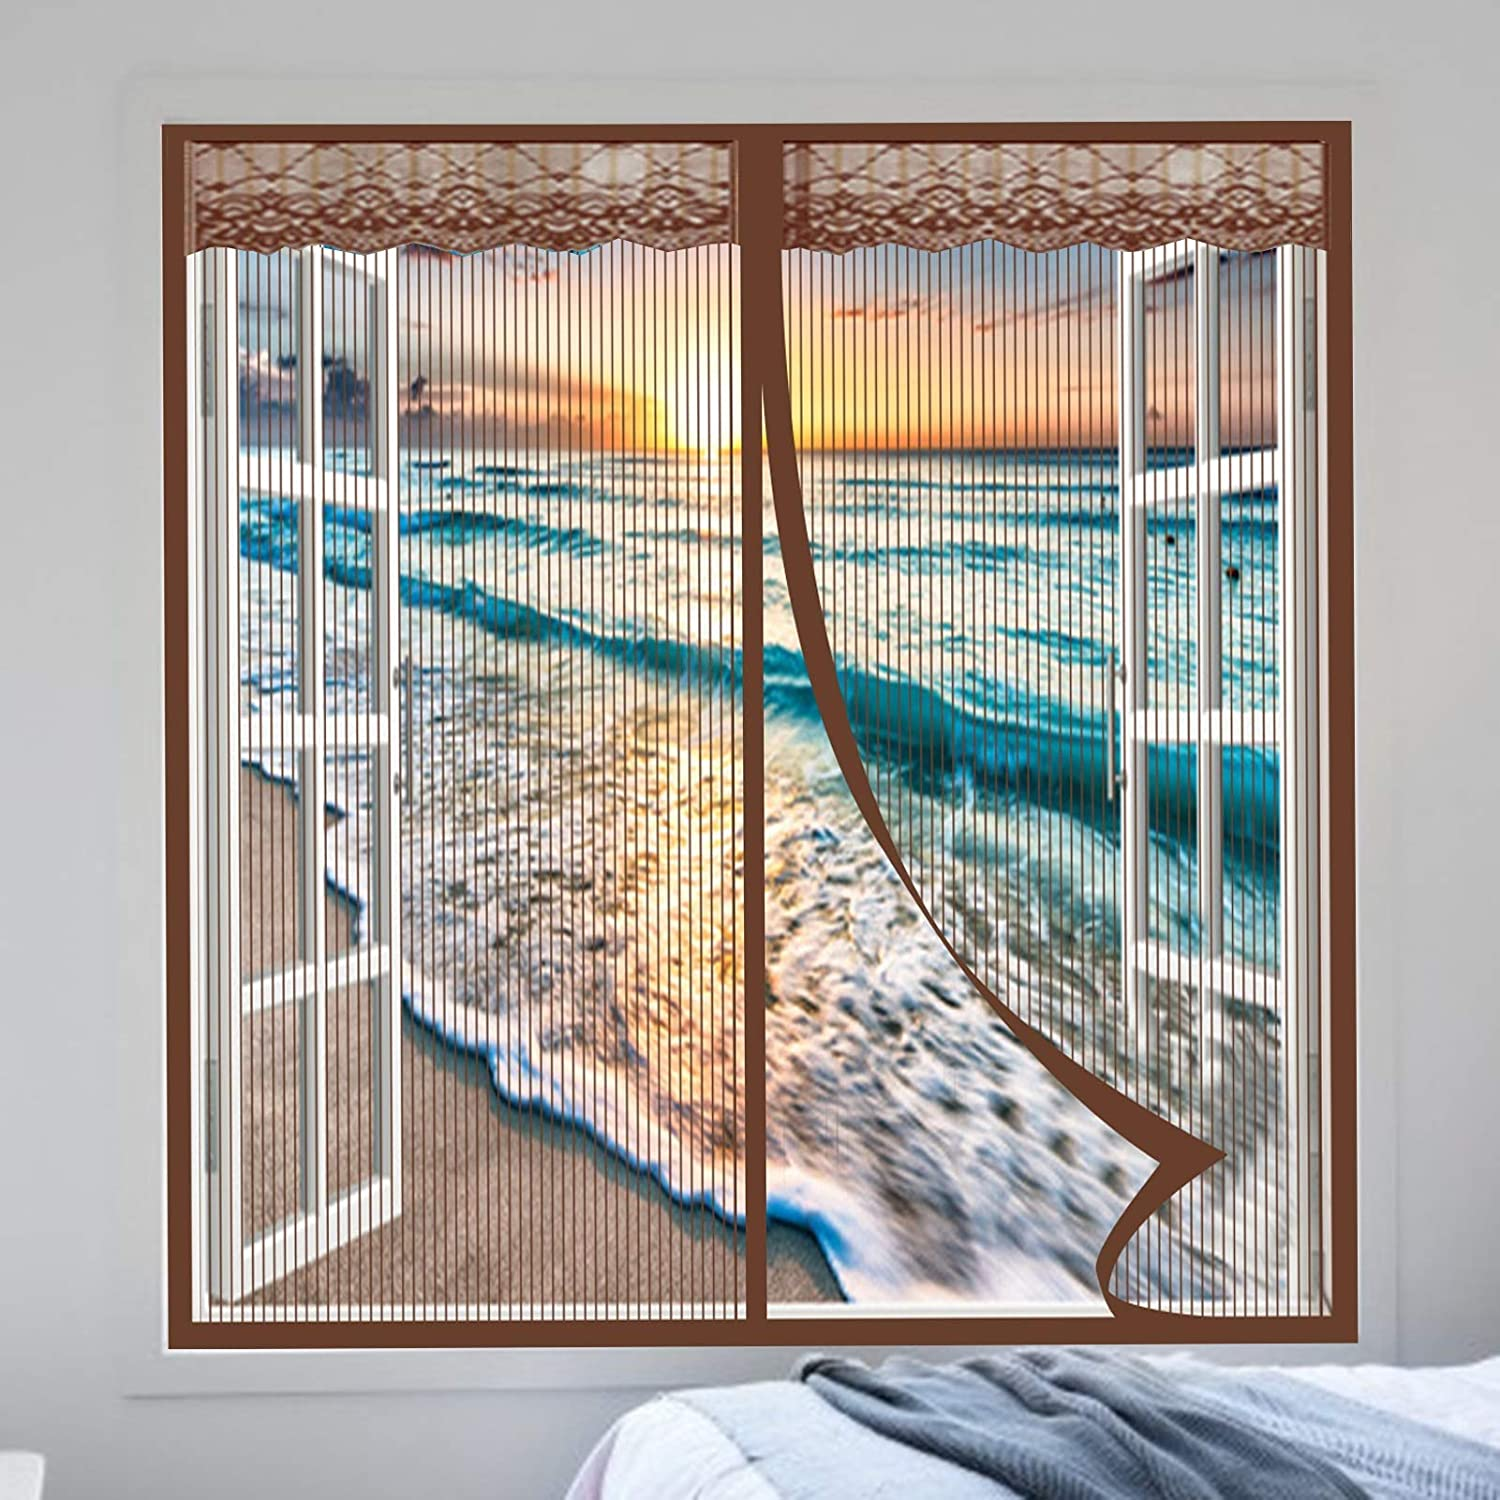 HAODELE New sales Magnetic Screen Door 85x100cm Scr Recommendation Window Magnets Closing